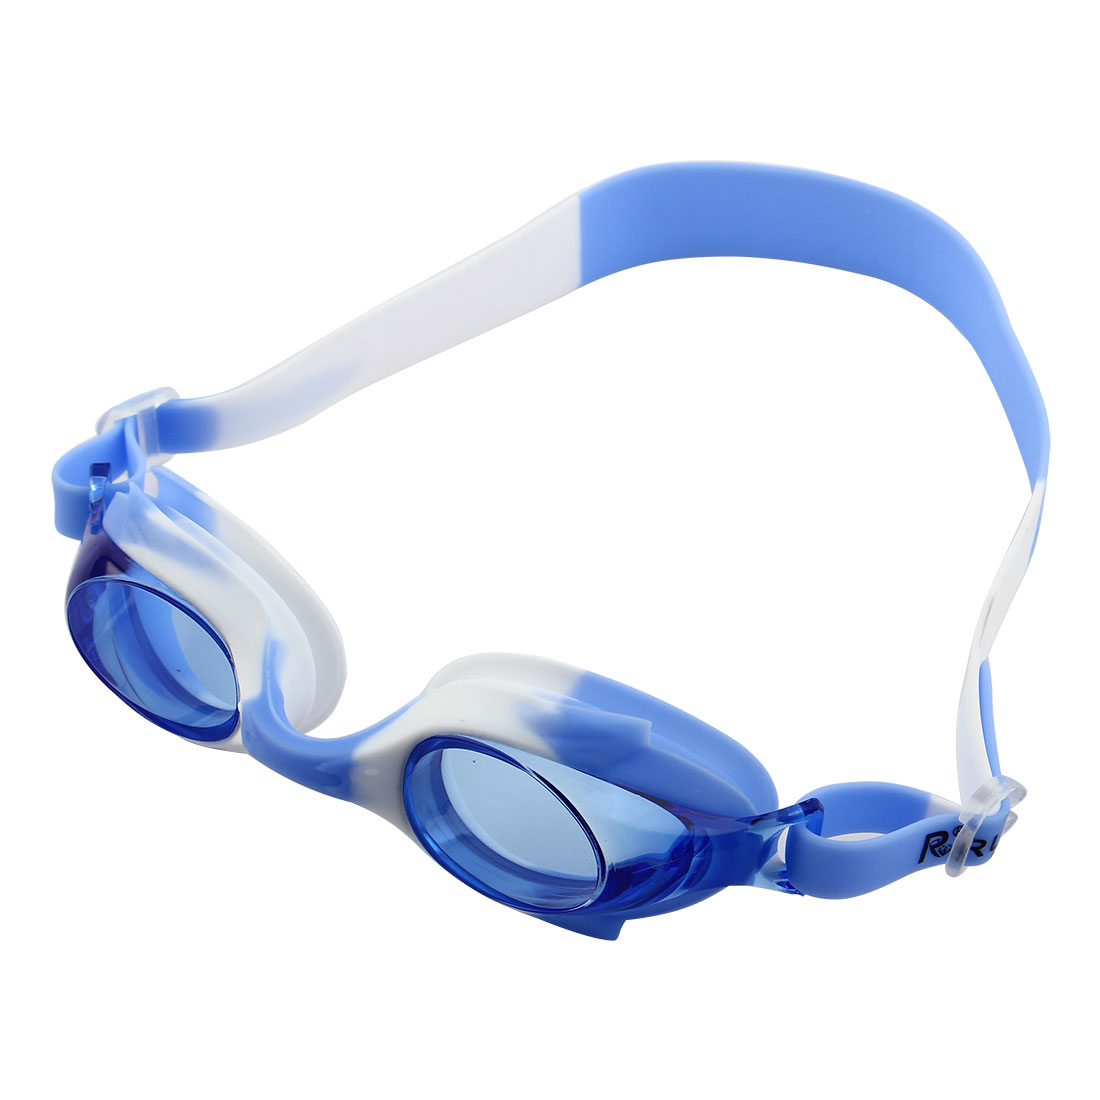 Silicone Adjustable Belt Clear Vision Anti Fog Swim Glasses Swimming Goggles Blue White w Storage Case for Youth Boys Girls